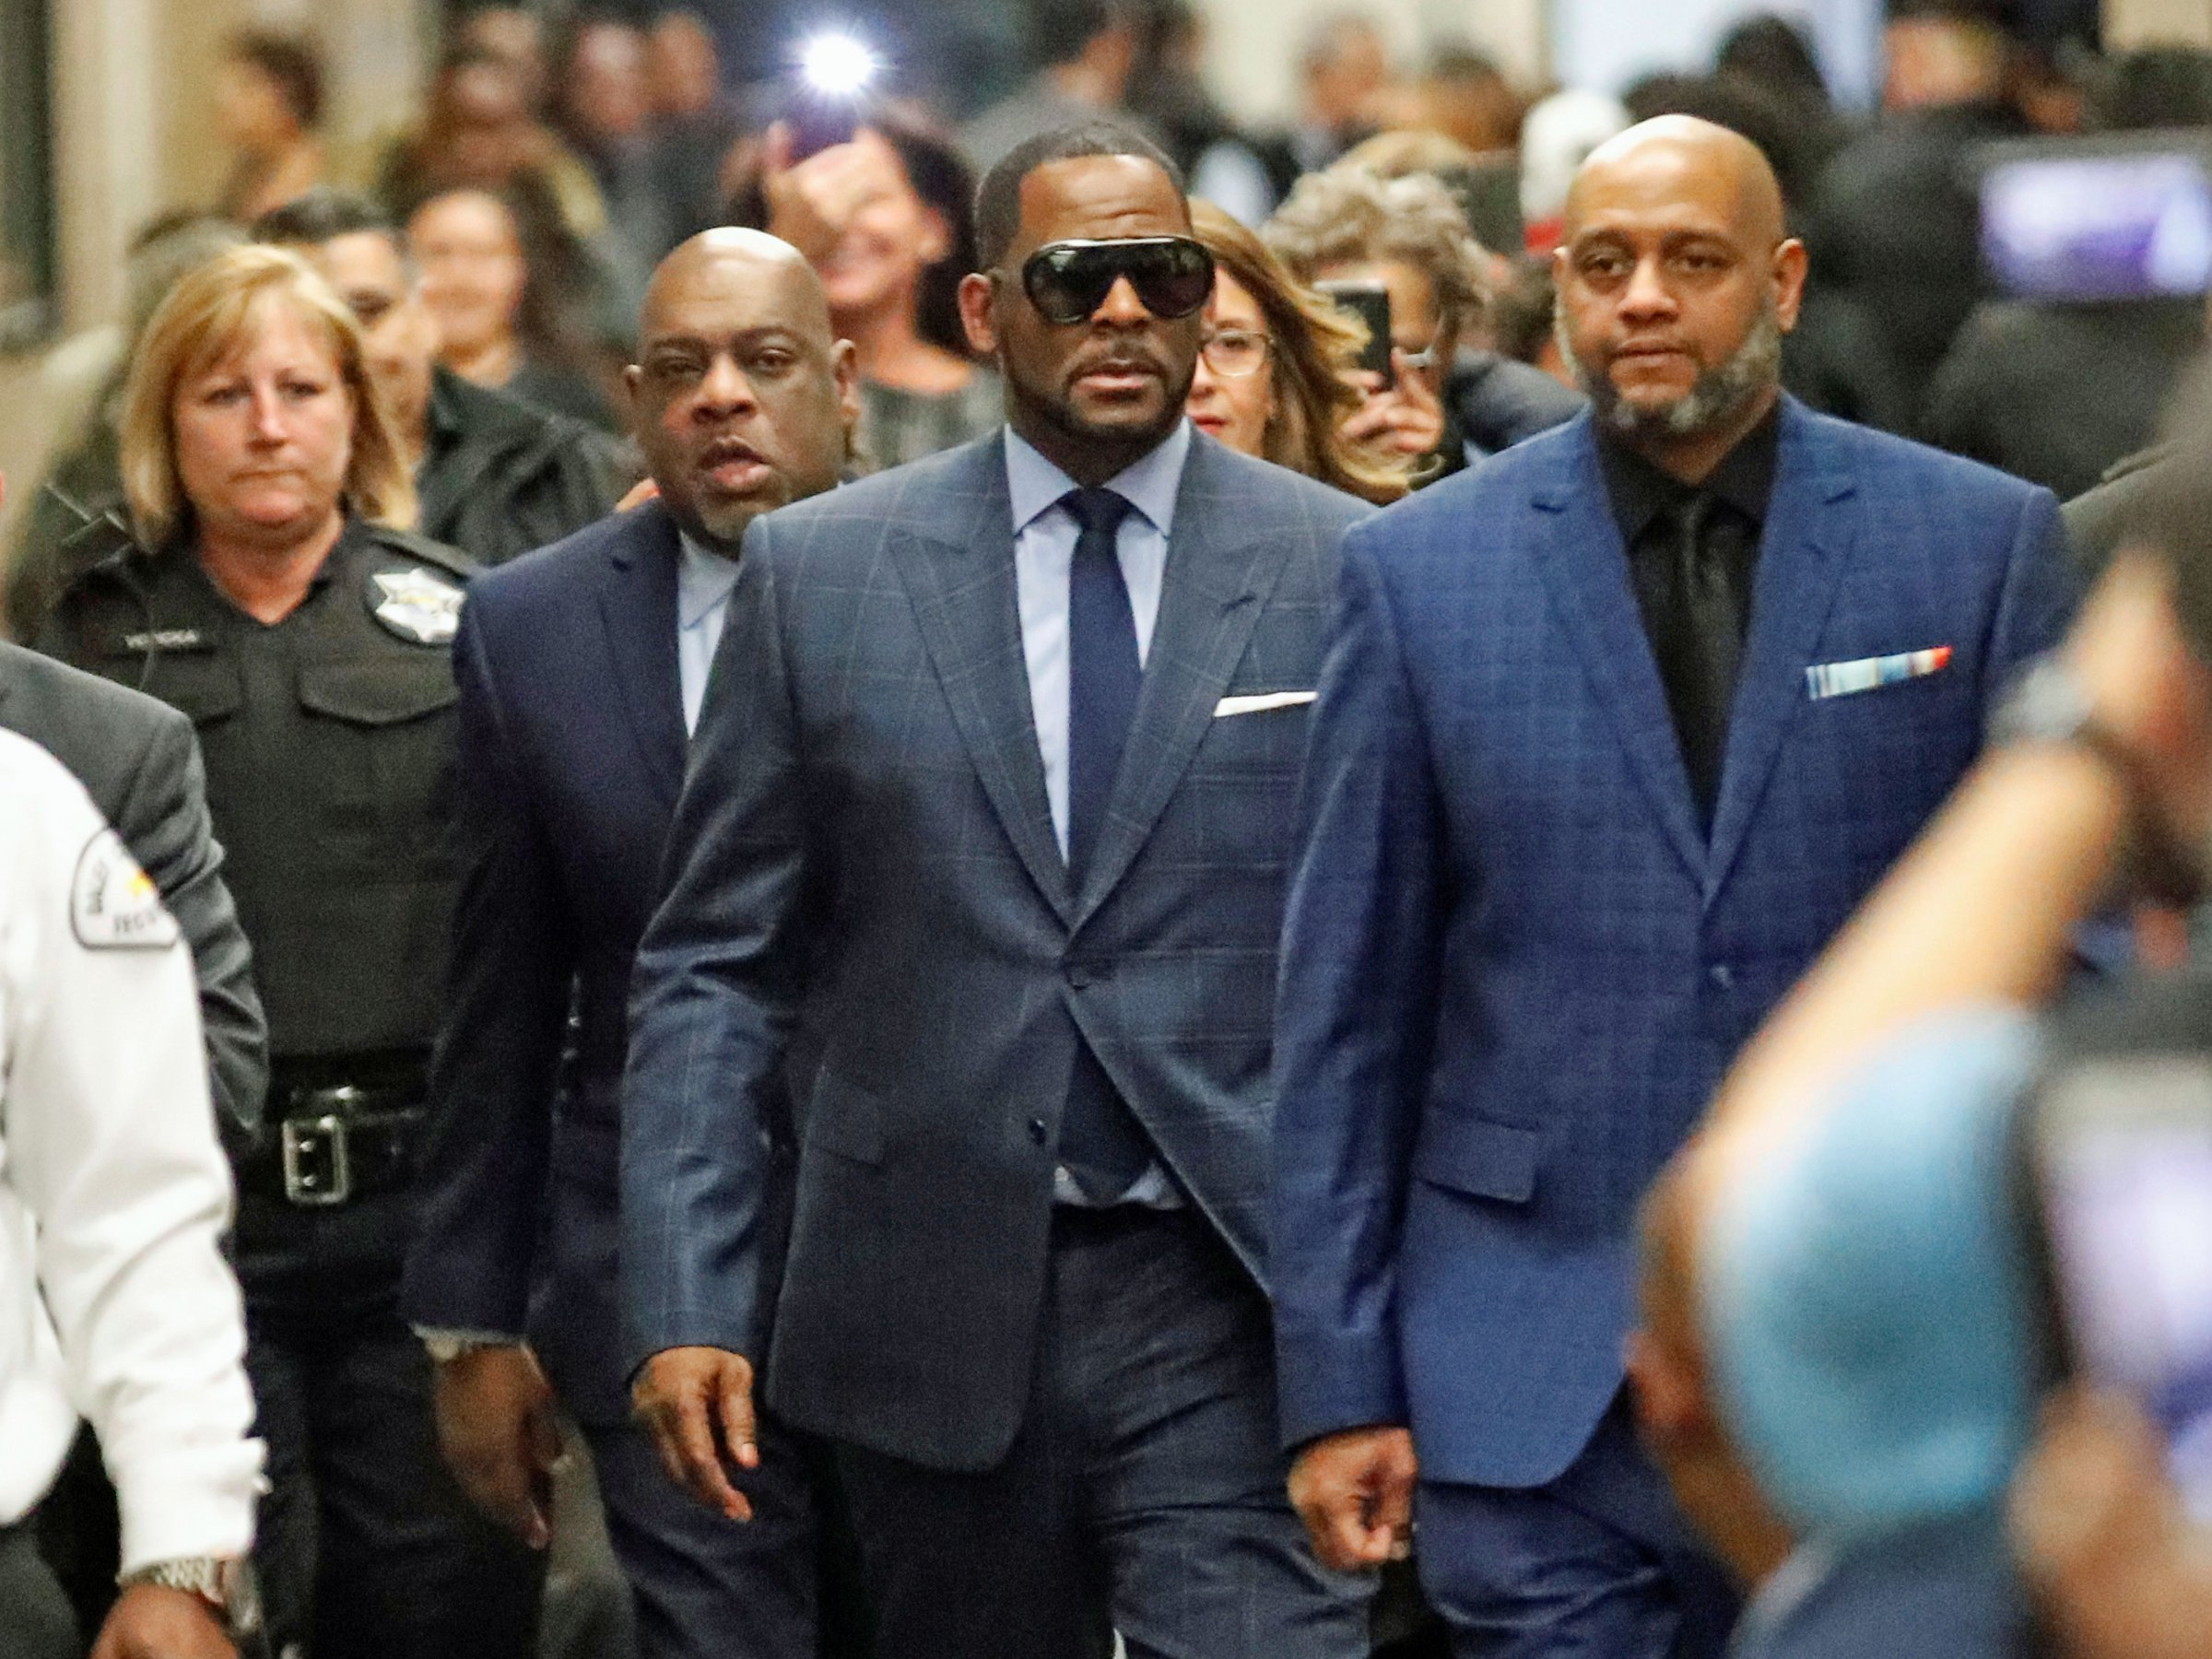 6066b61c e6bb 4556 8a9f 2bfcb1d0ebdf - R.Kelly arrested again, this time on Federal sex crime charges